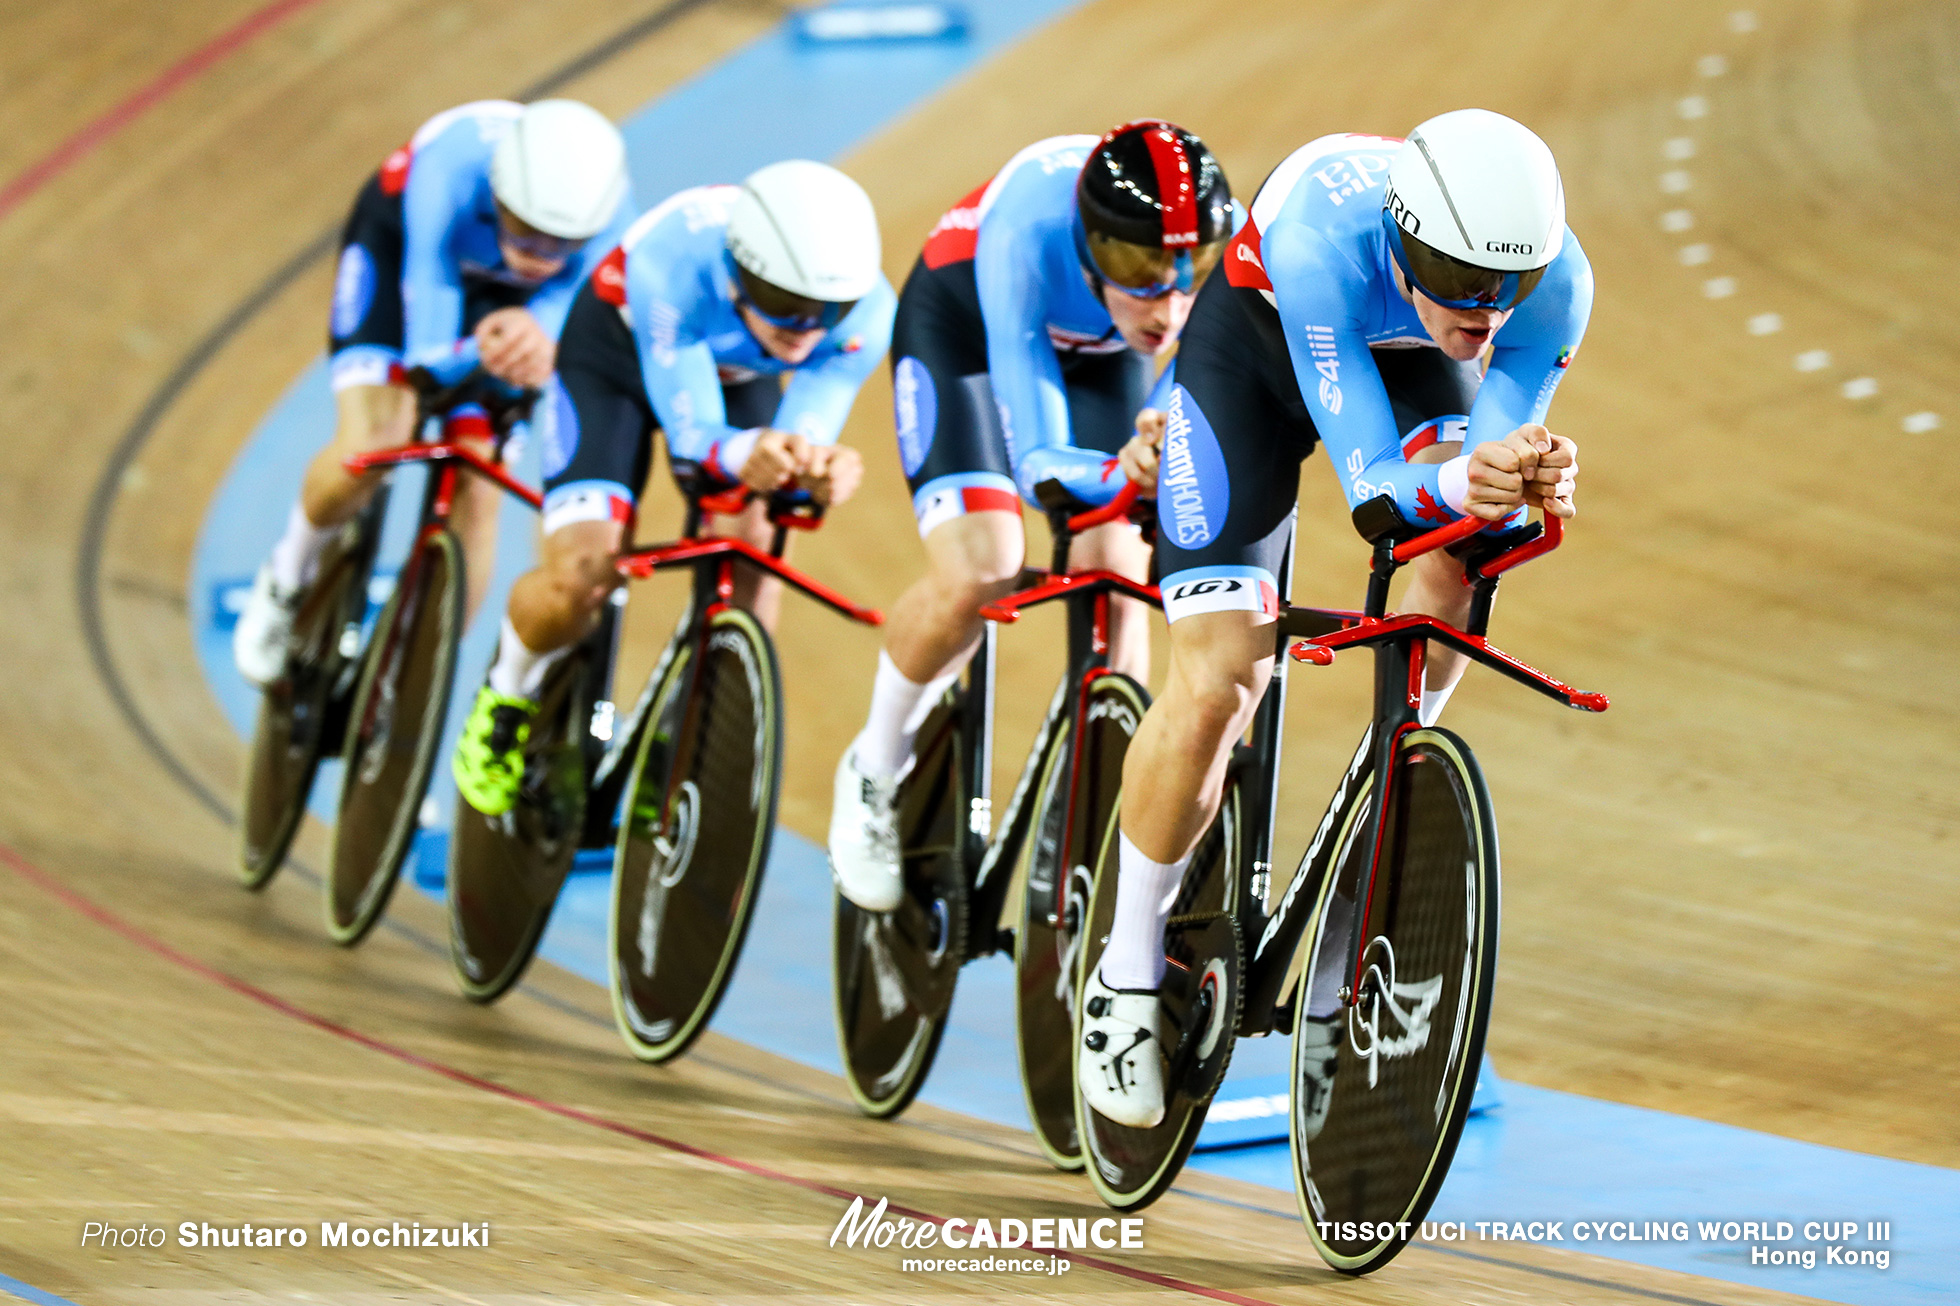 Men's Team Pursuit / TISSOT UCI TRACK CYCLING WORLD CUP III, Hong Kong, Derek GEE デレック・ジー Evan BURTNIK エヴァン・バートニク Chris ERNST クリス・エルンスト Jay LAMOUREUX ジェイ・ラモルー